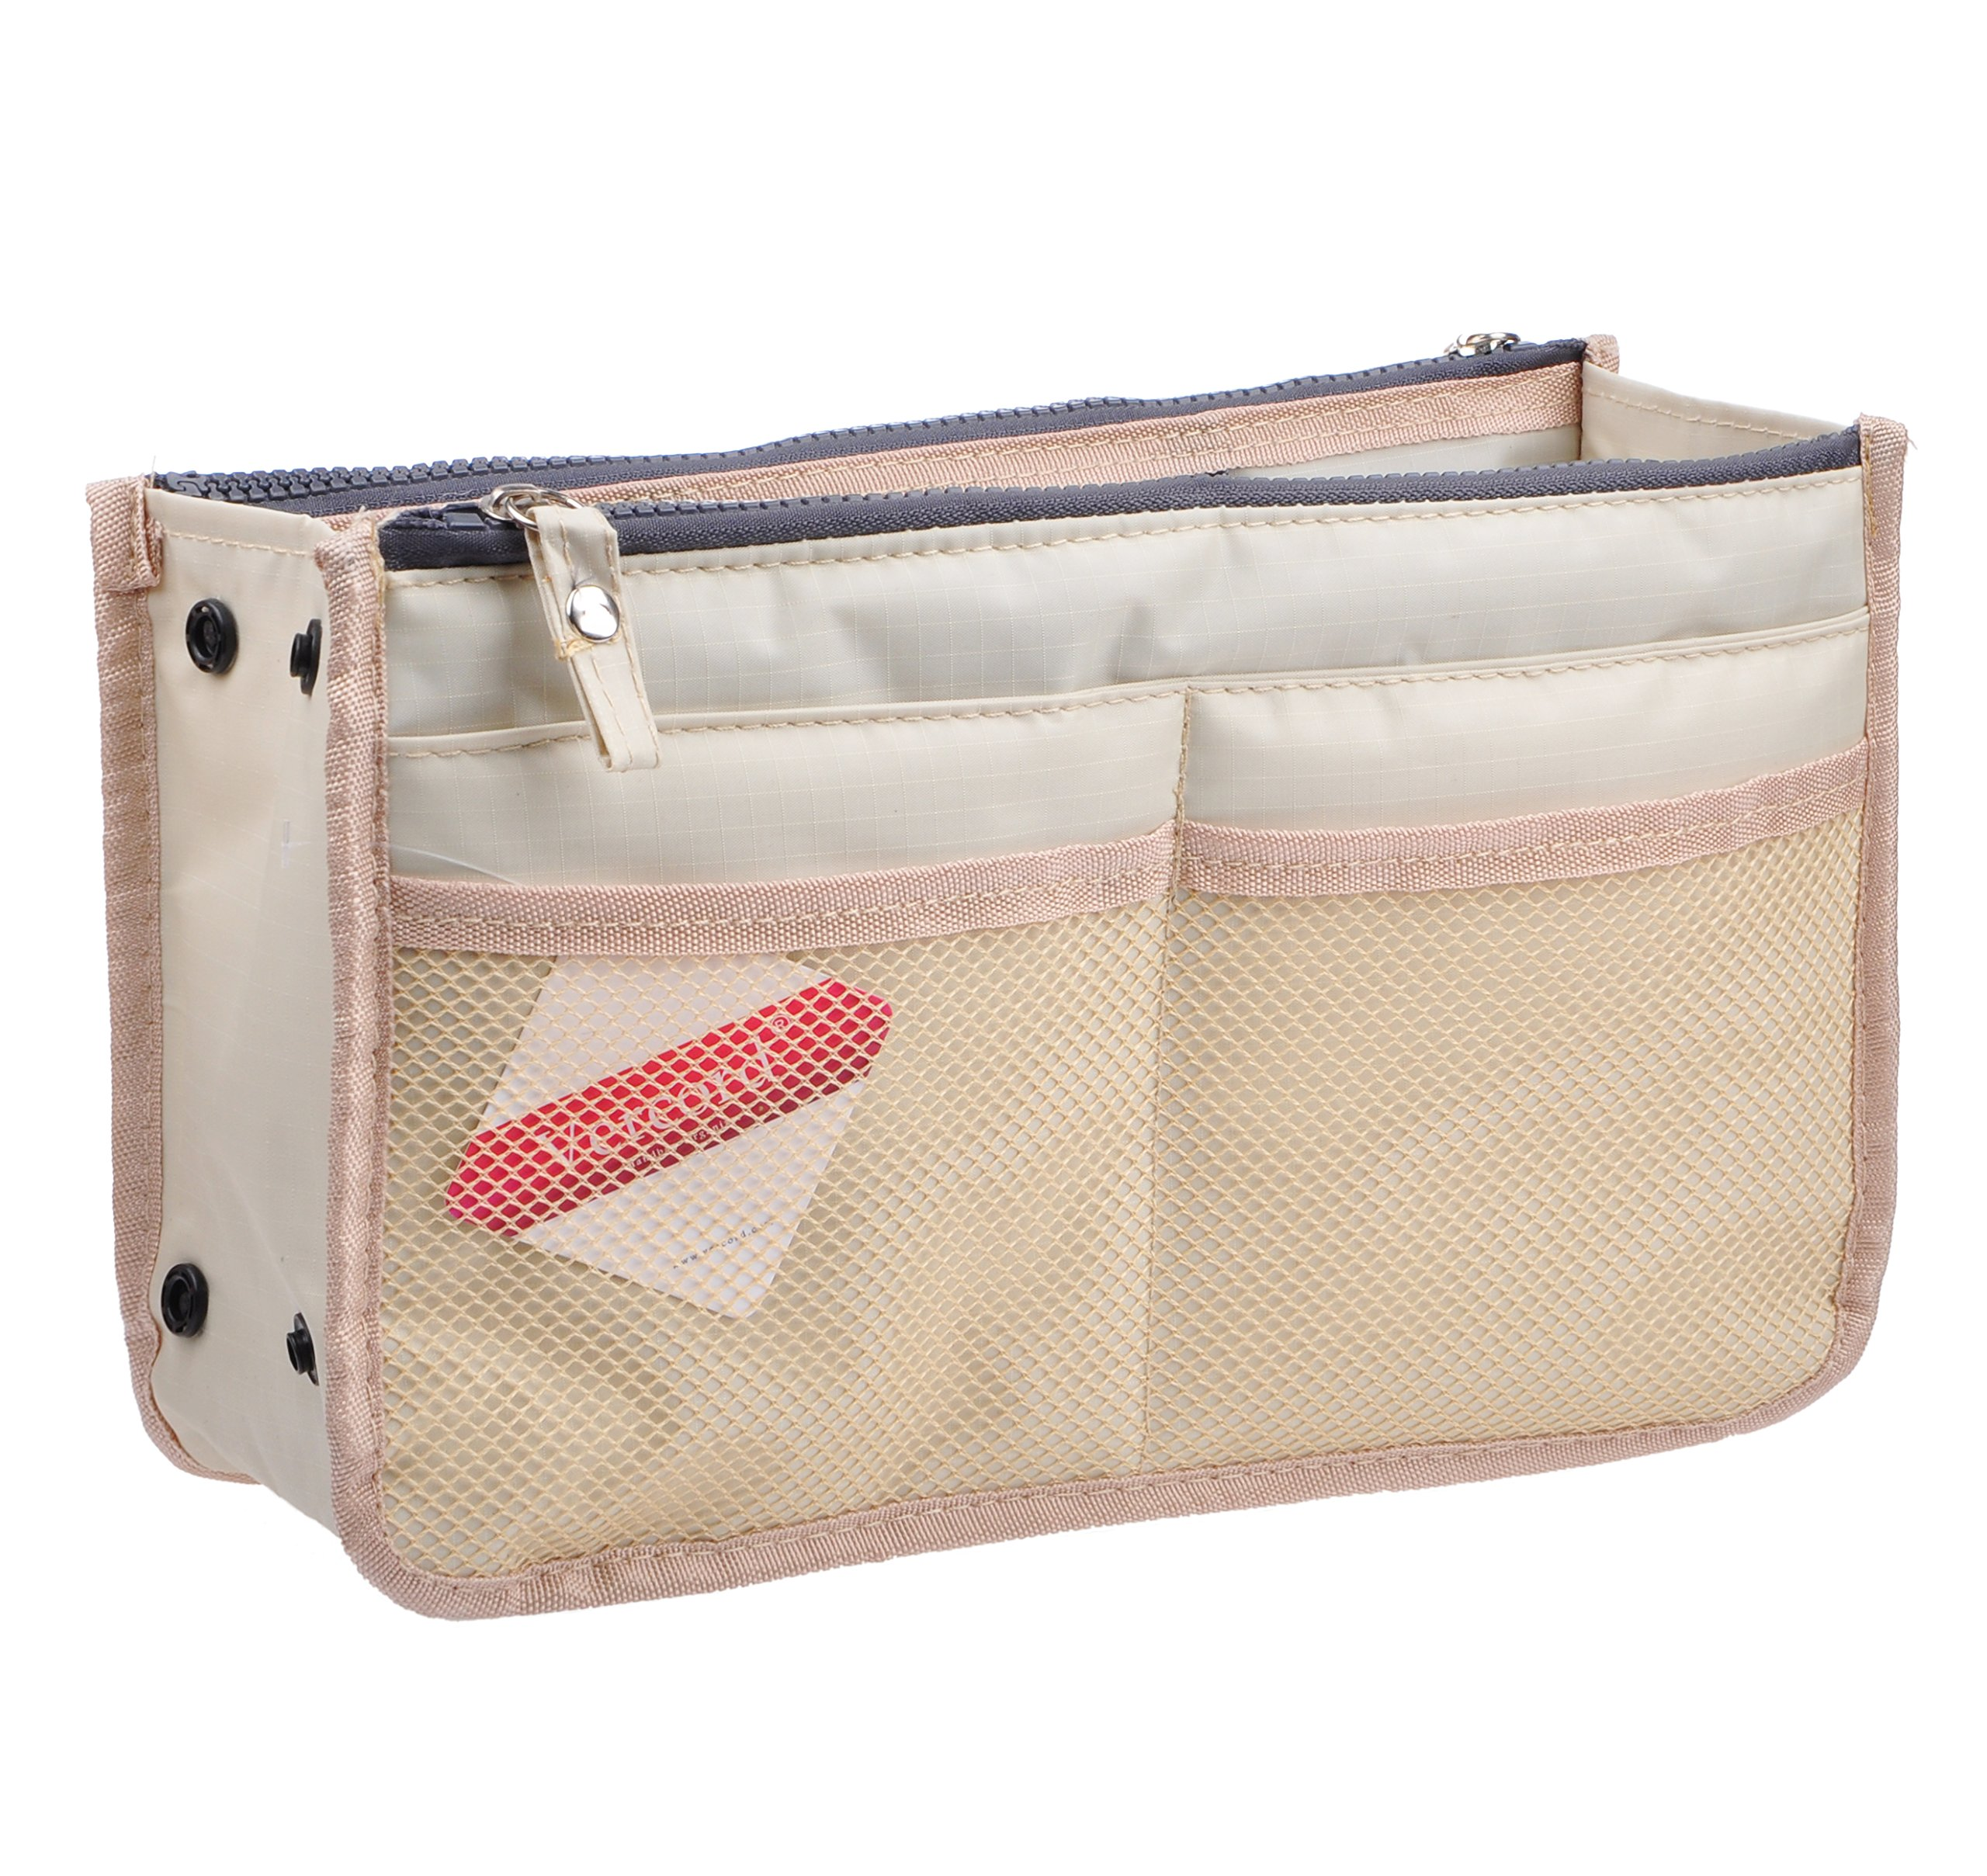 Vercord Updated Purse Handbag Organizer Insert Liner Bag in Bag 13 Pockets 3 Size, Milky Beige L